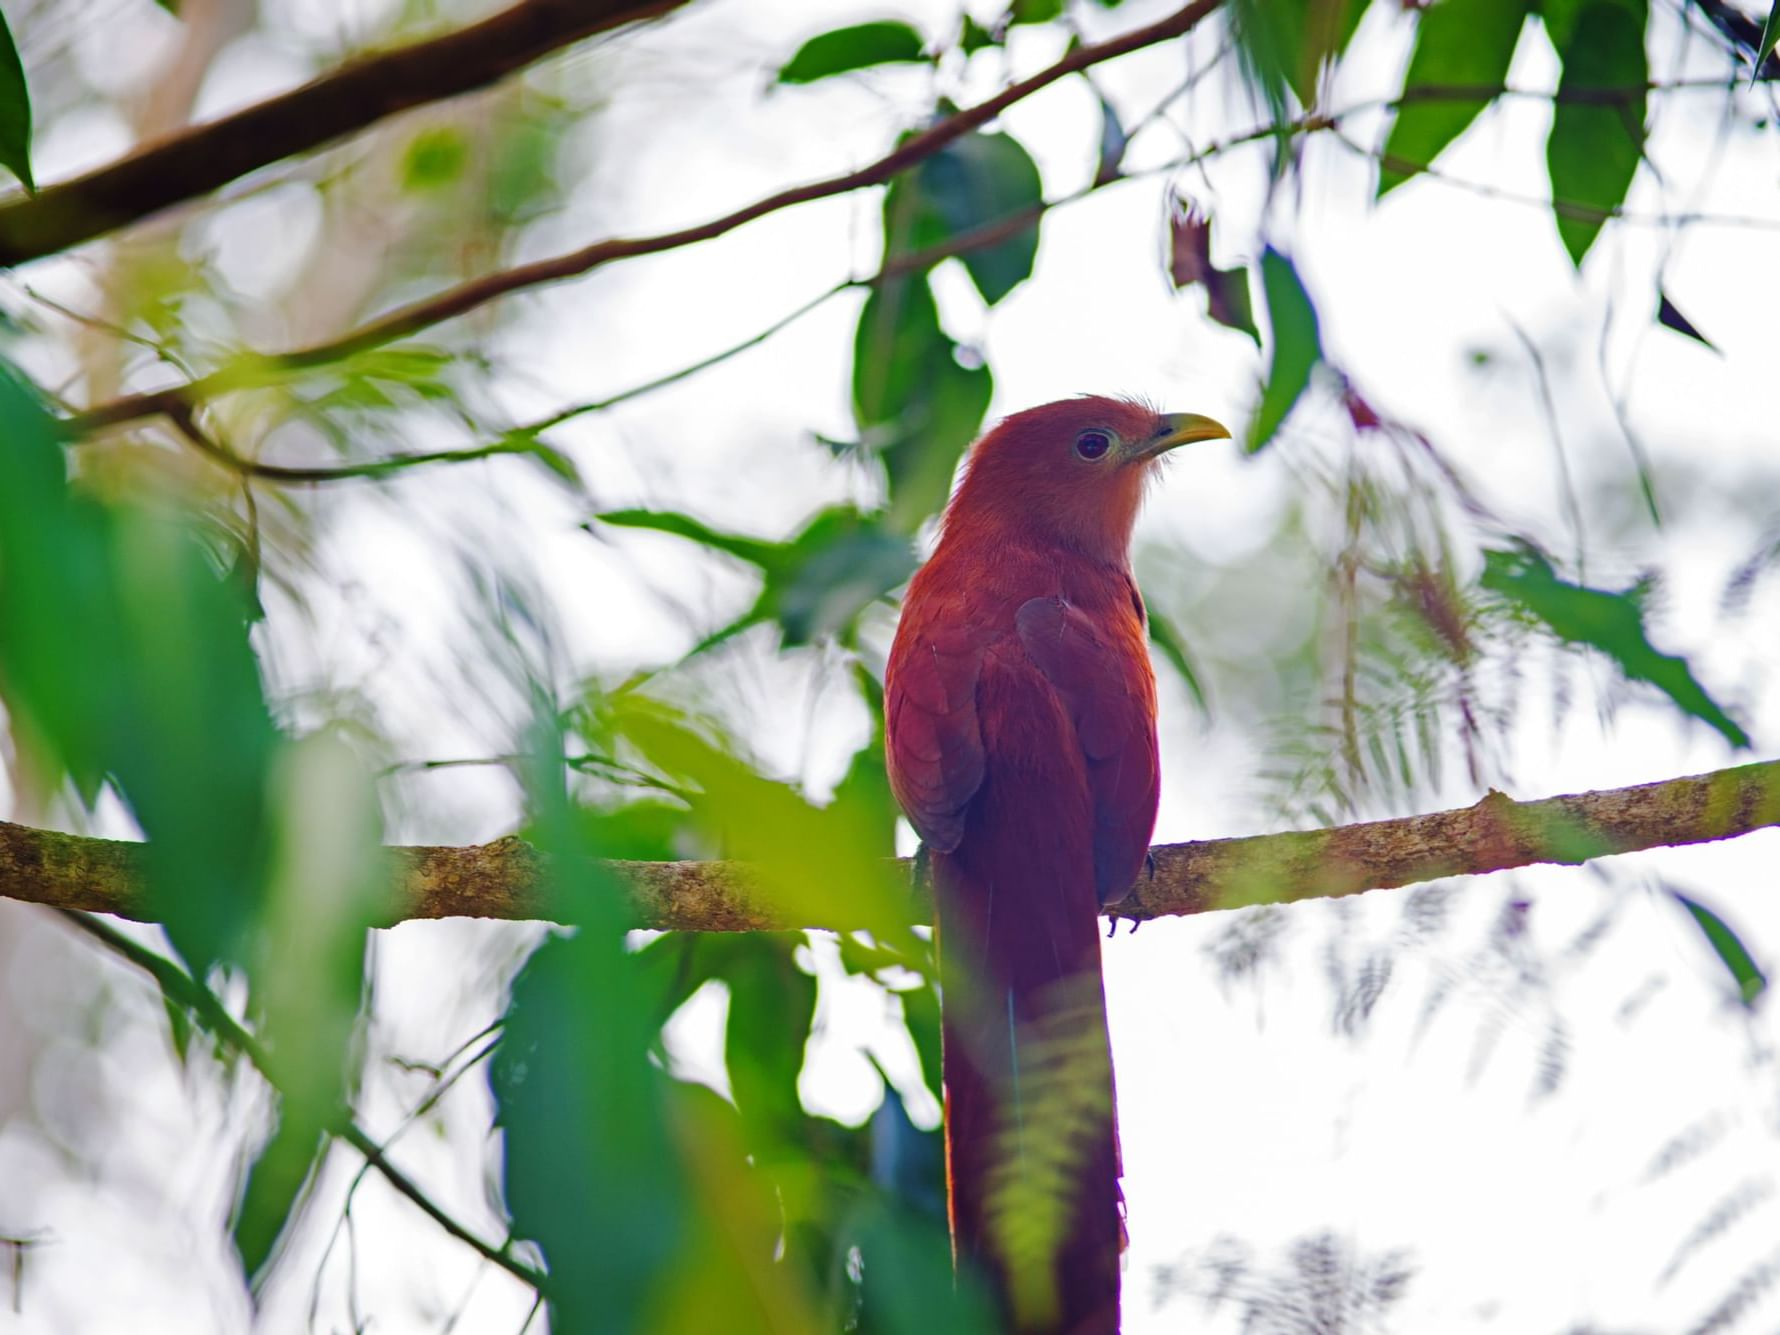 A bird in a branch in the Chetumal - Kohunlich city